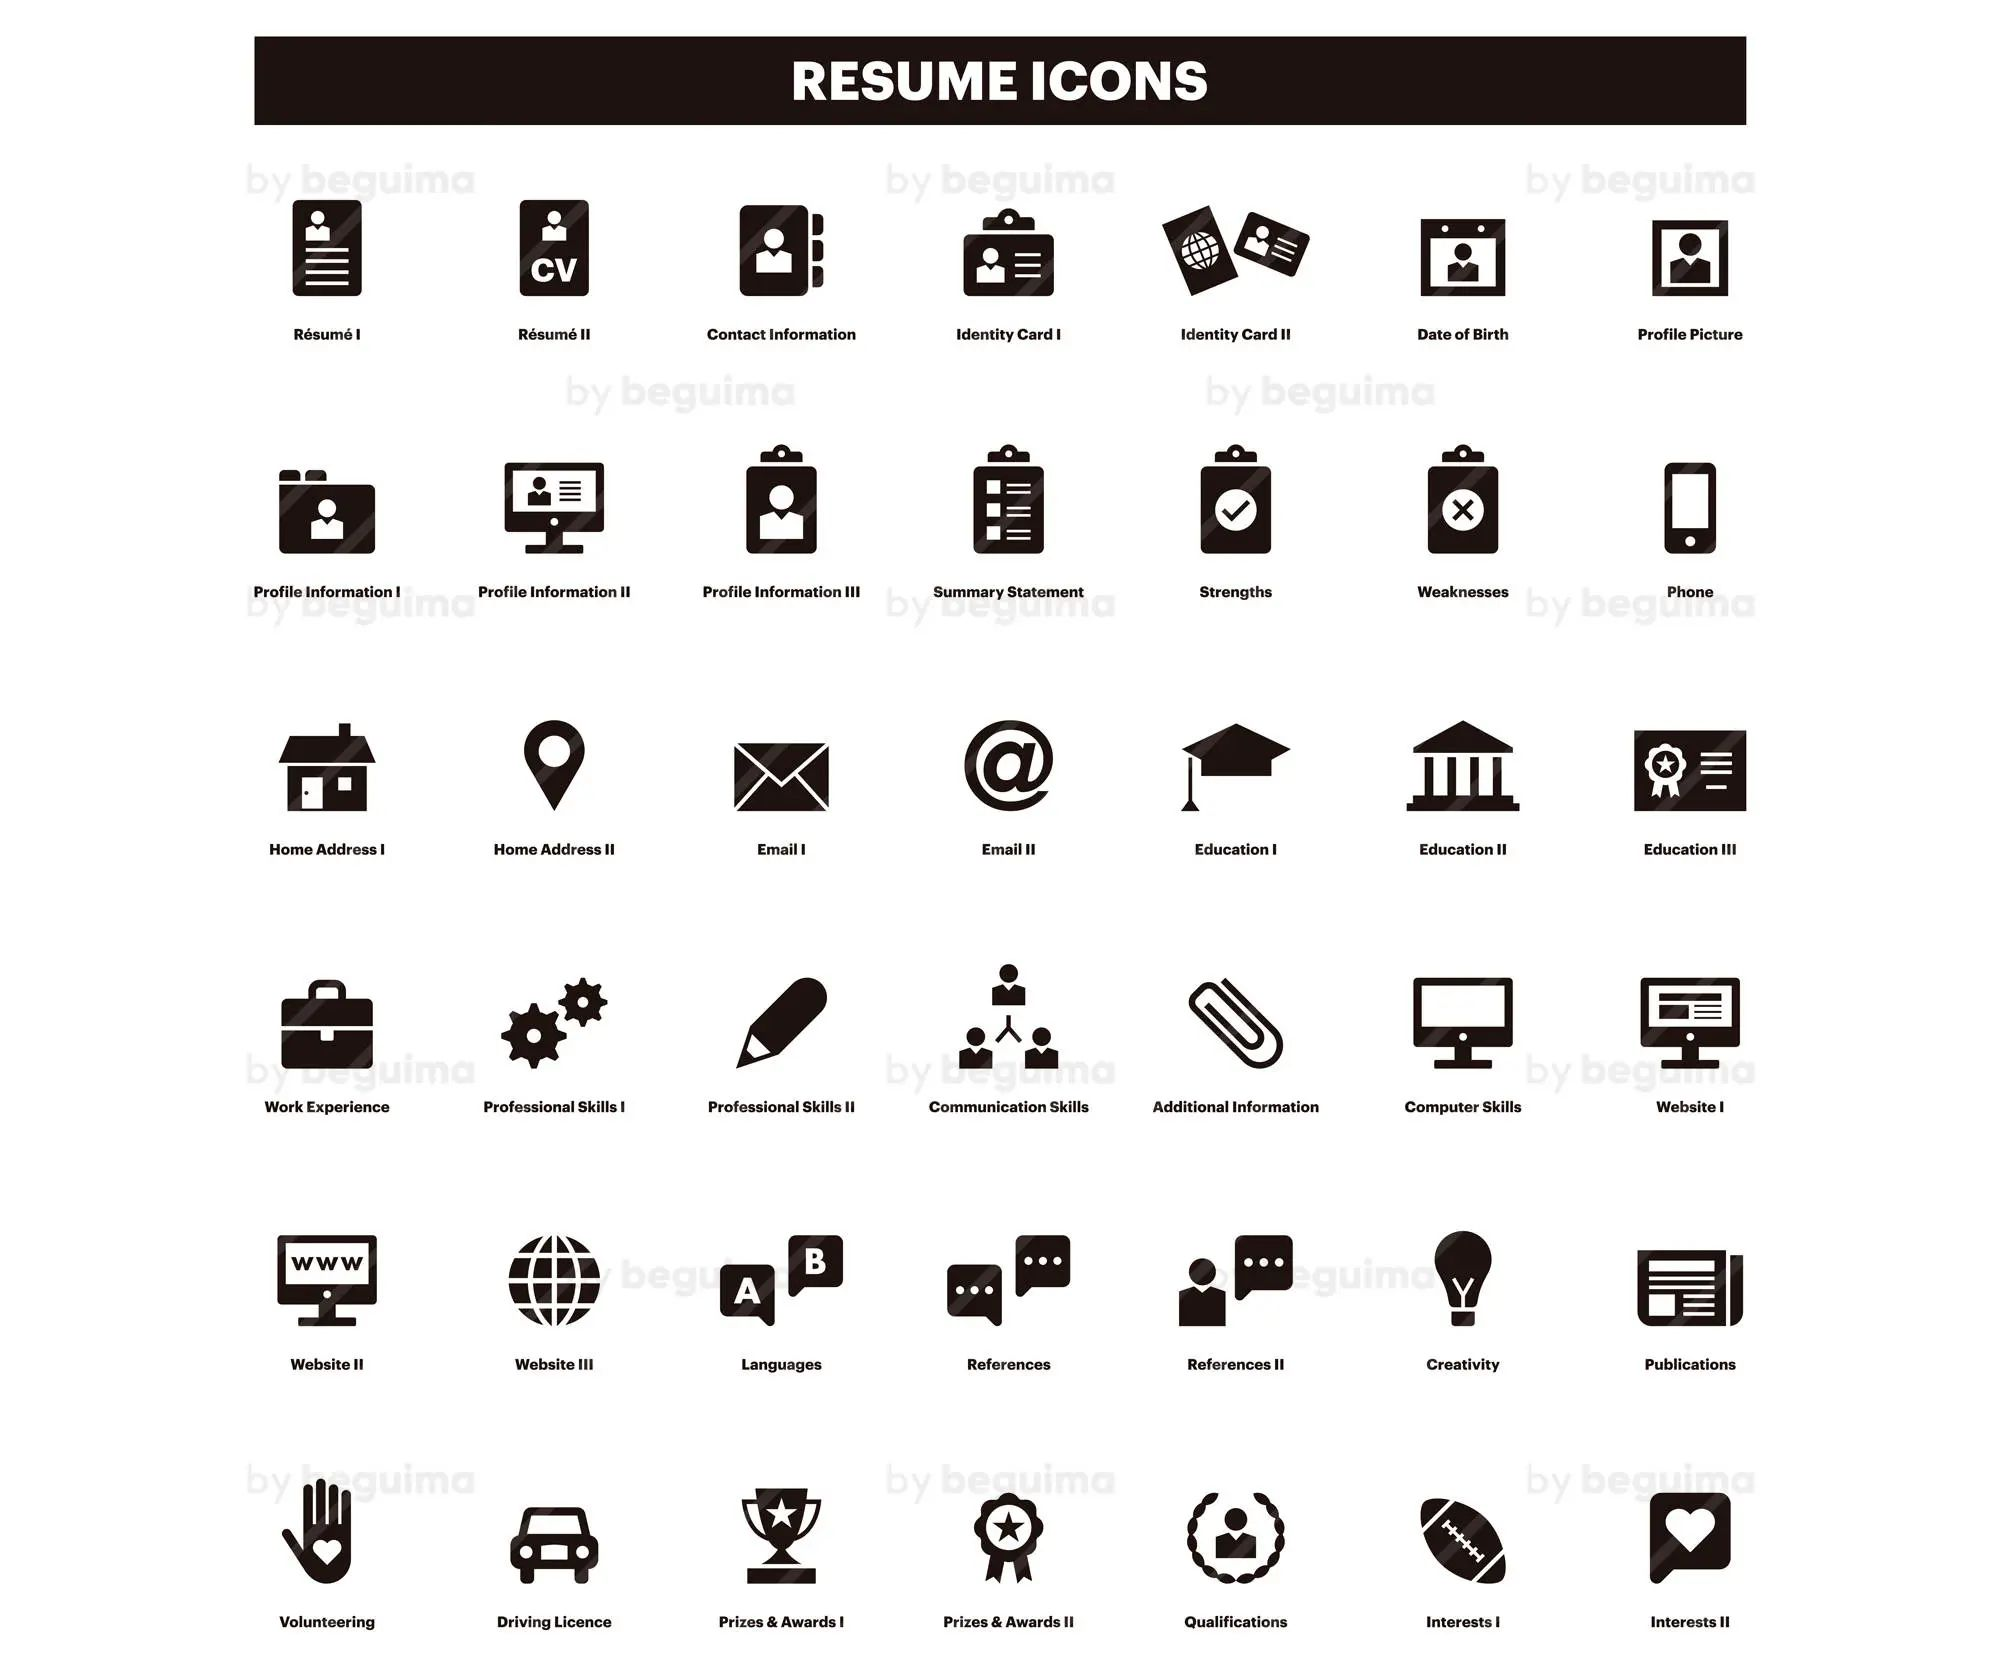 resume hobbies icons